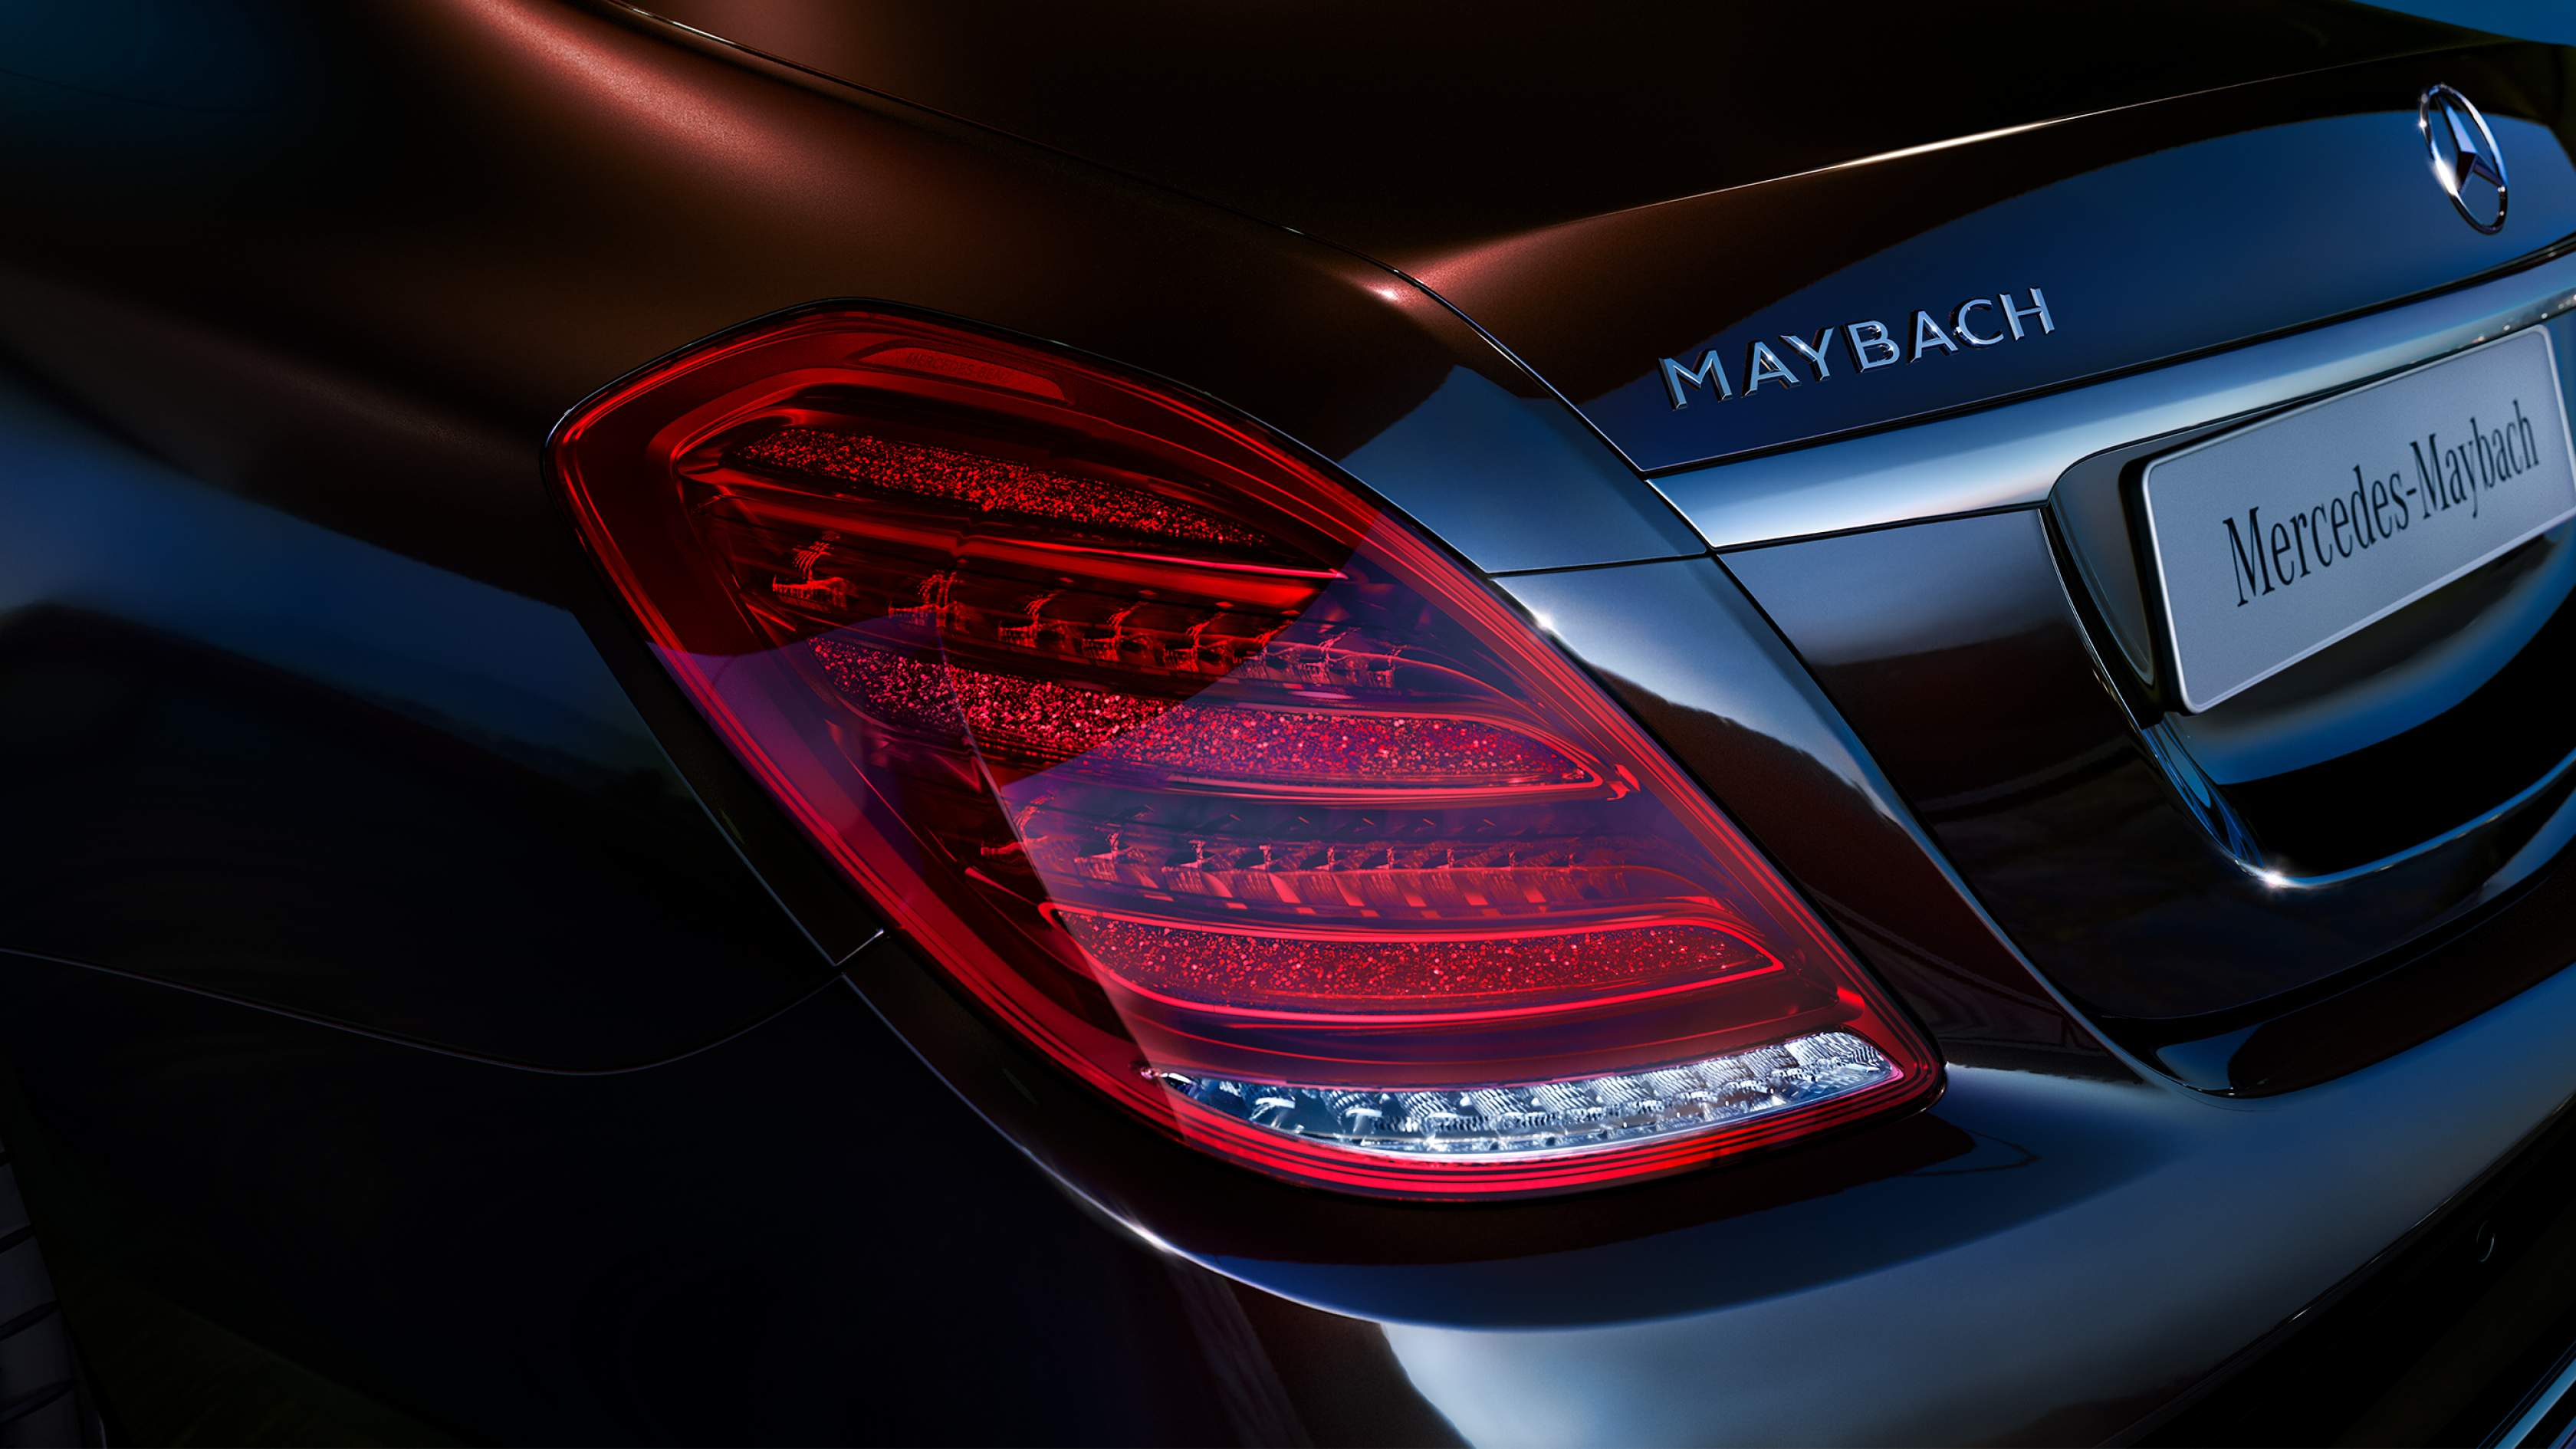 Новый автомобиль Mercedes-Maybach задняя фара